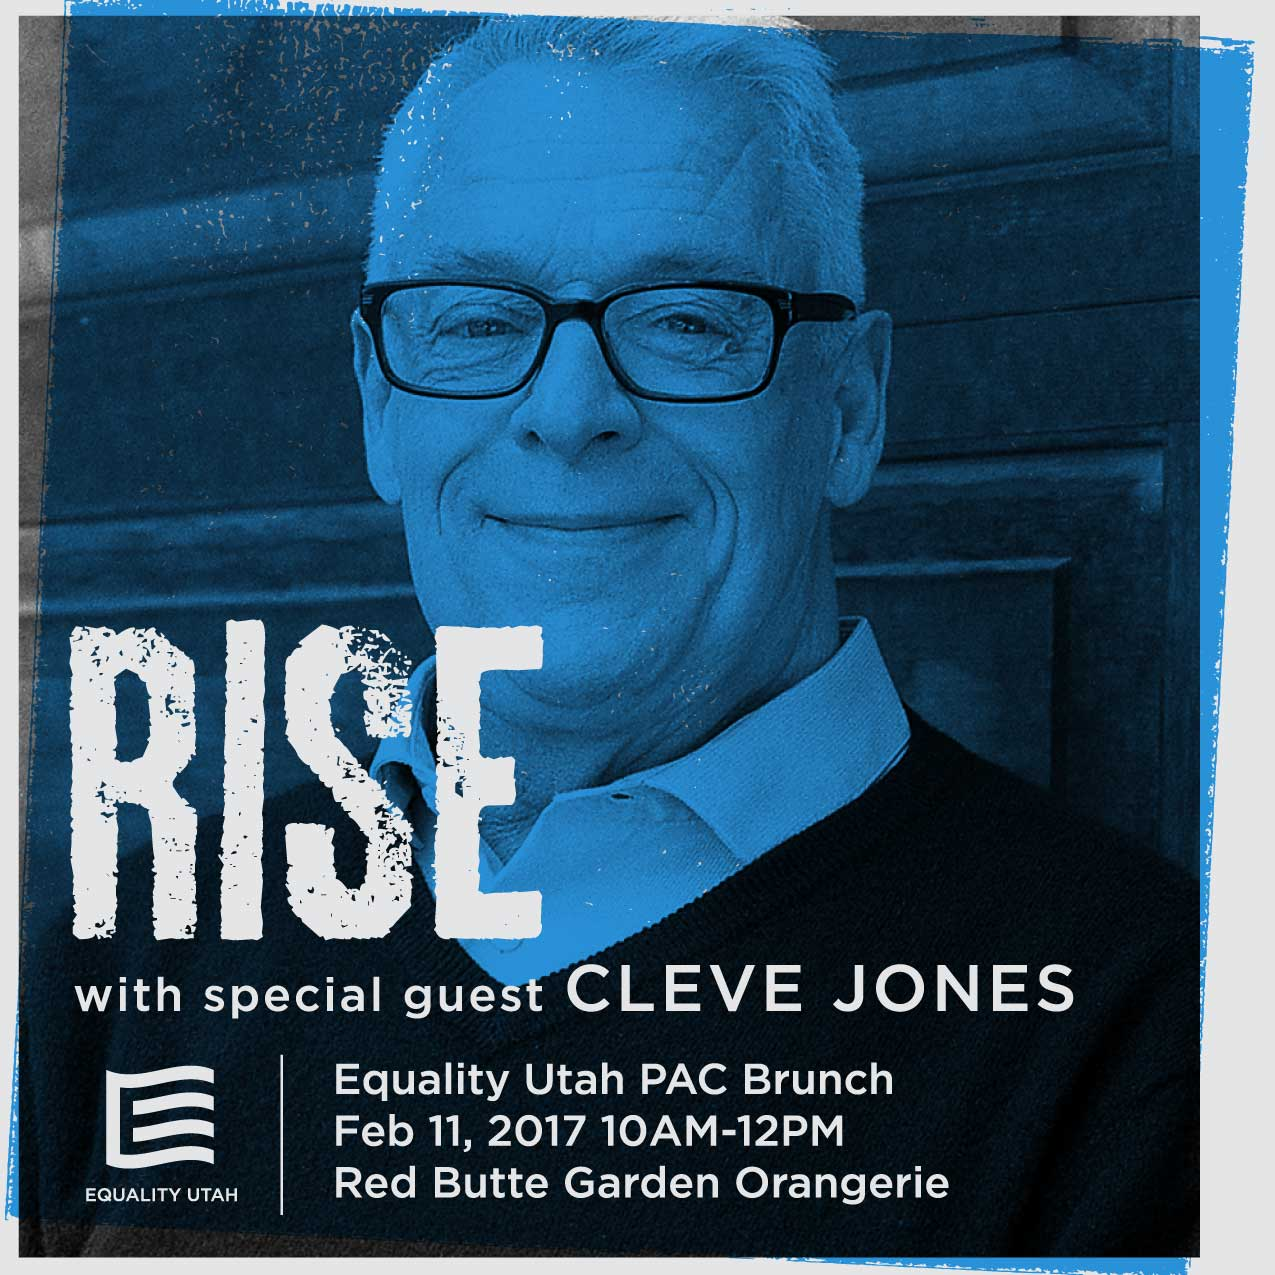 Graphic for 2017 PAC Brunch, featuring Cleve Jones